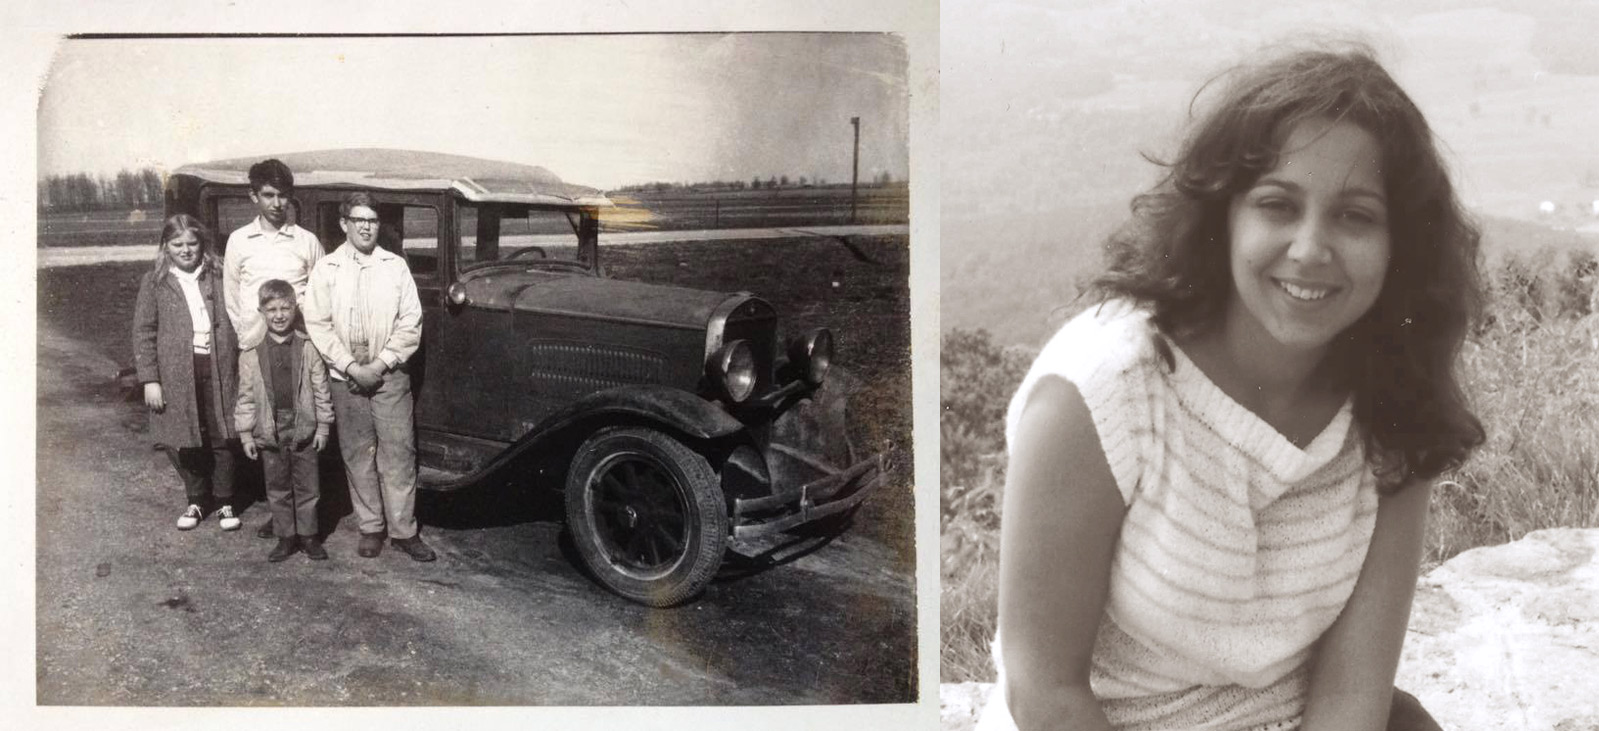 Above, Left: The Souers kids (my dad in the back) in 1970 with their father's 1930 Hudson Essex. Right: My mom in 1982.